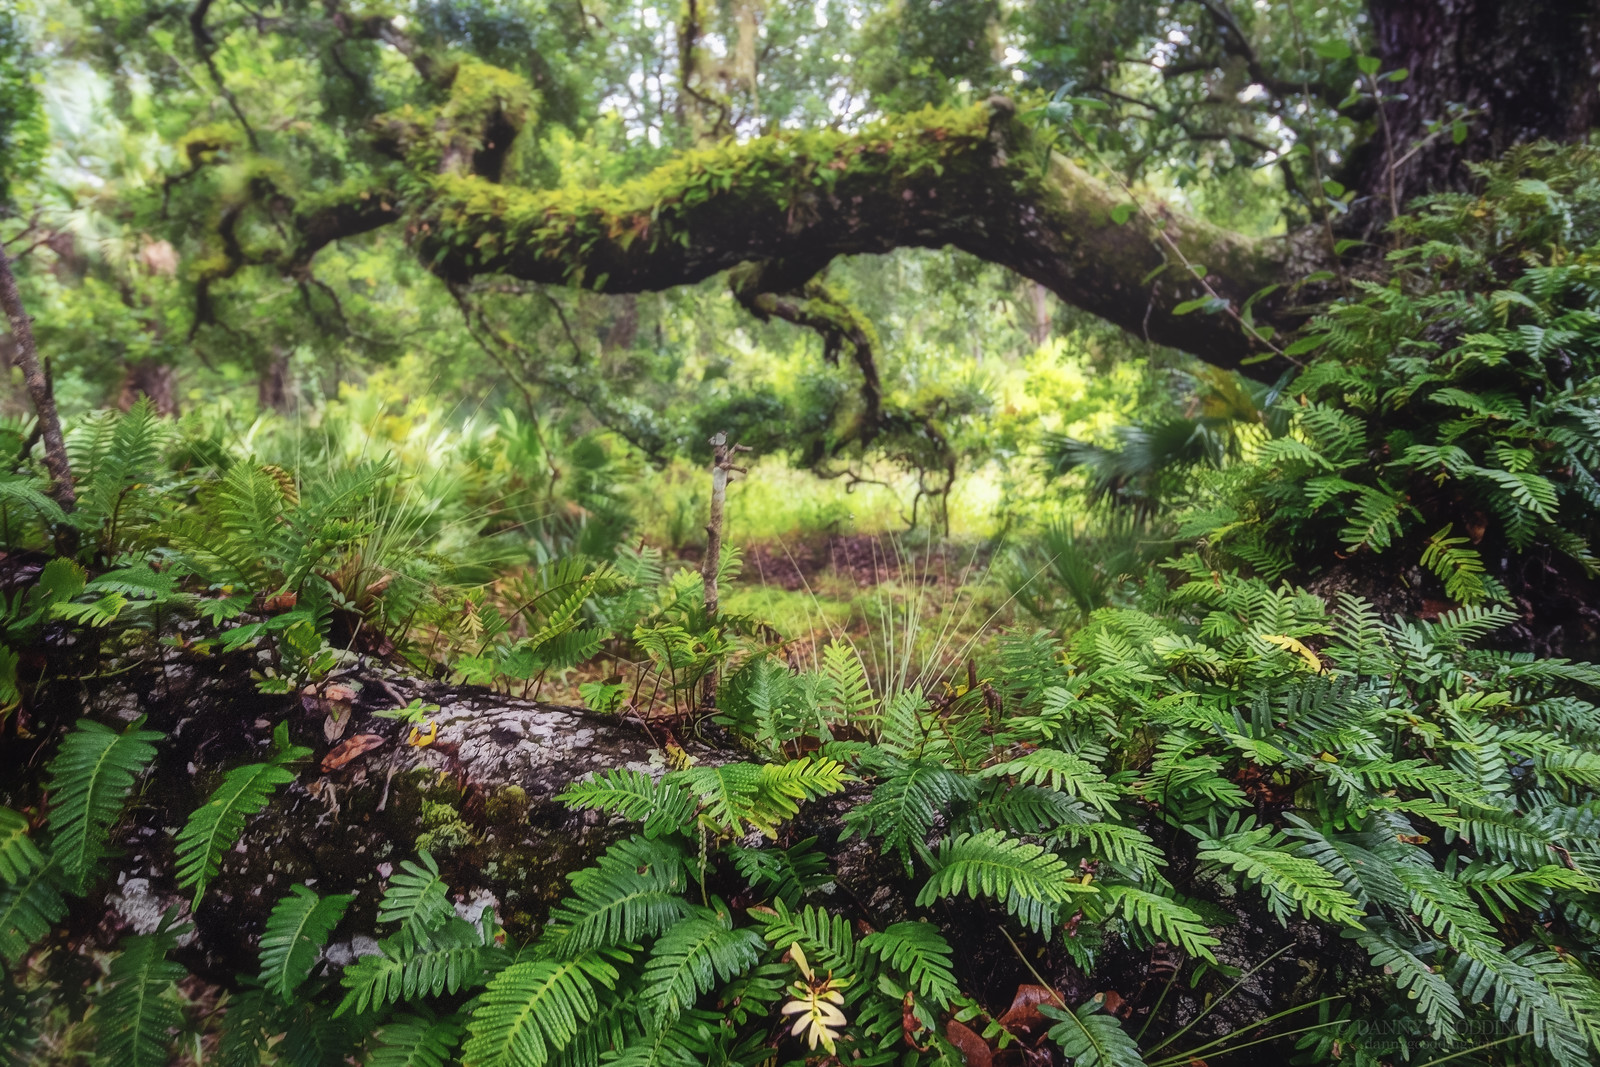 Resurrection ferns on a branch of a large oak tree in central Florida [OC] [1600×1067]